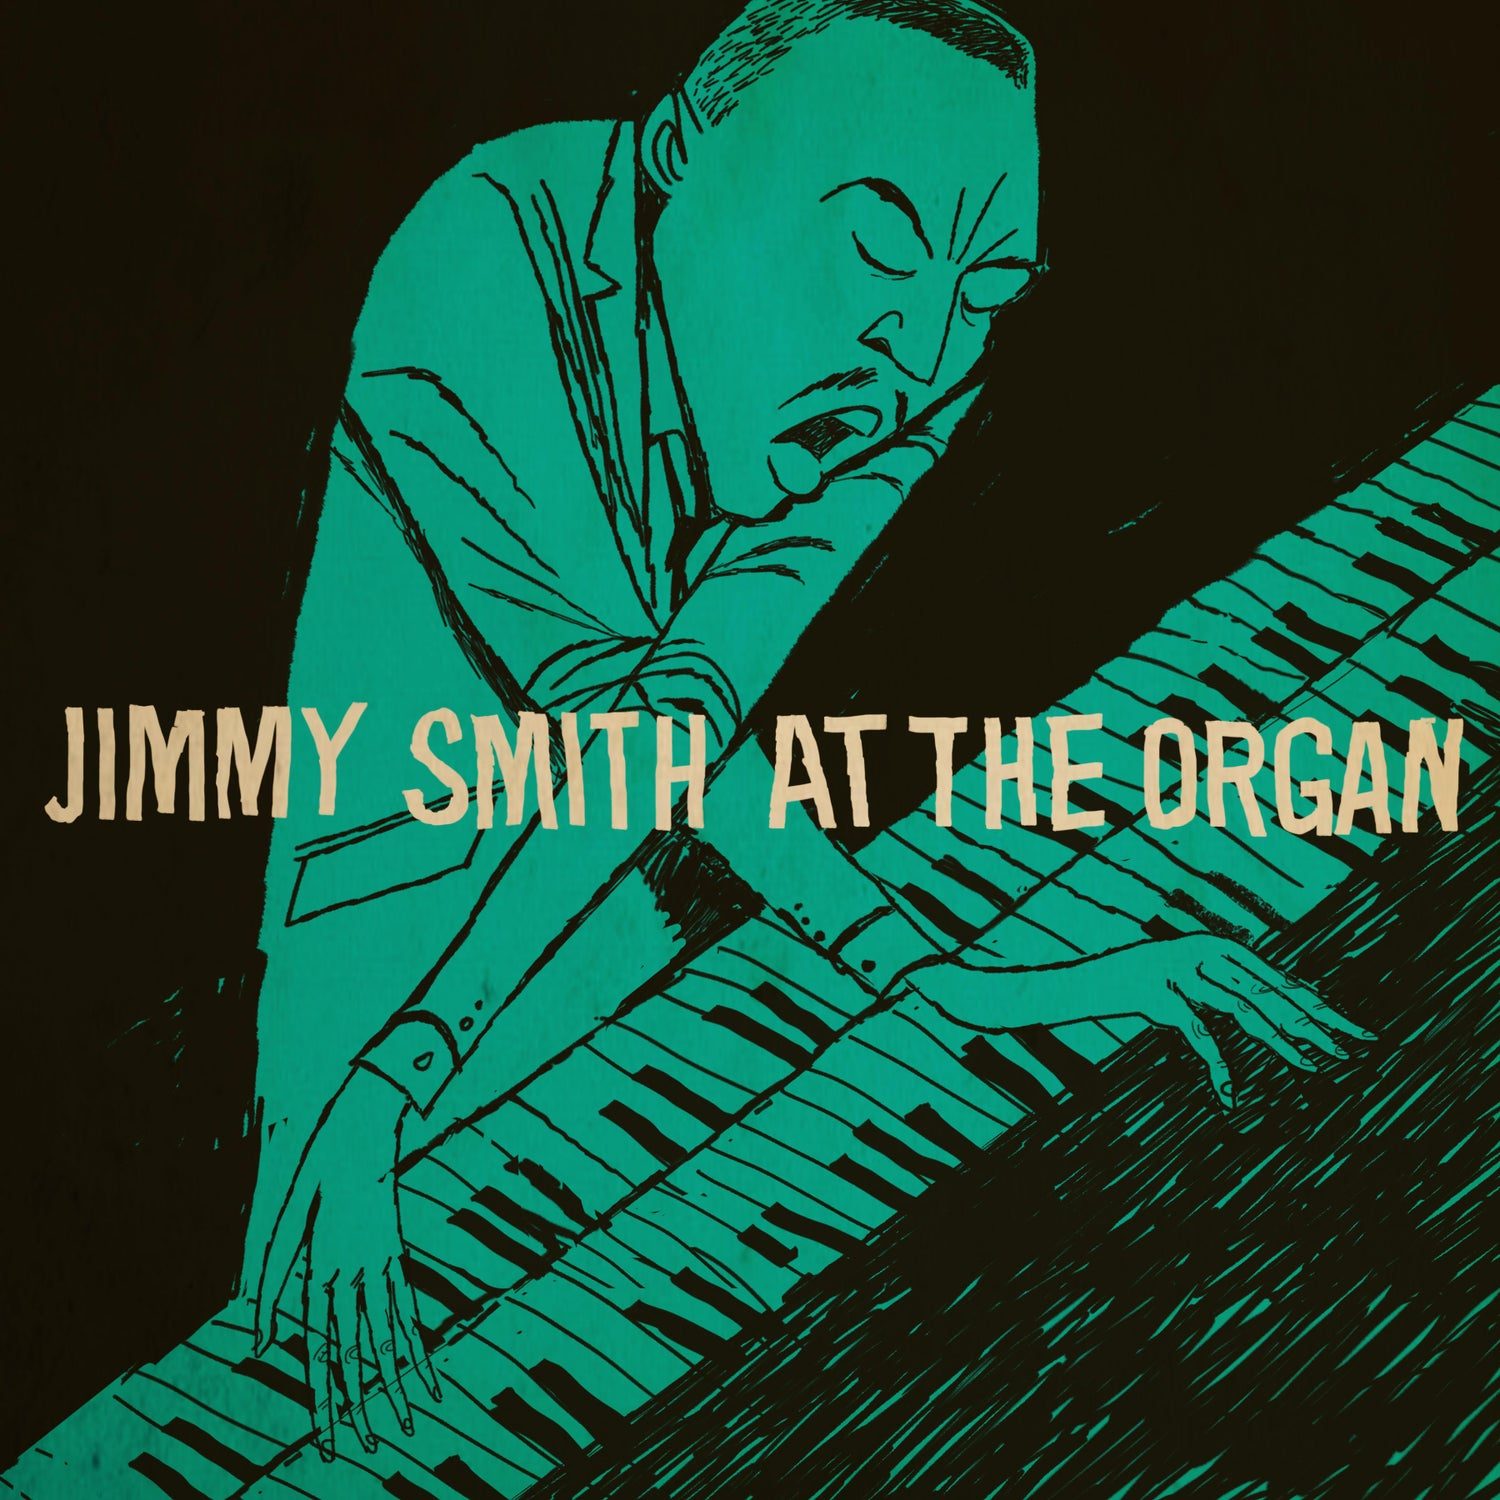 Image of Jimmy Smith at the organ